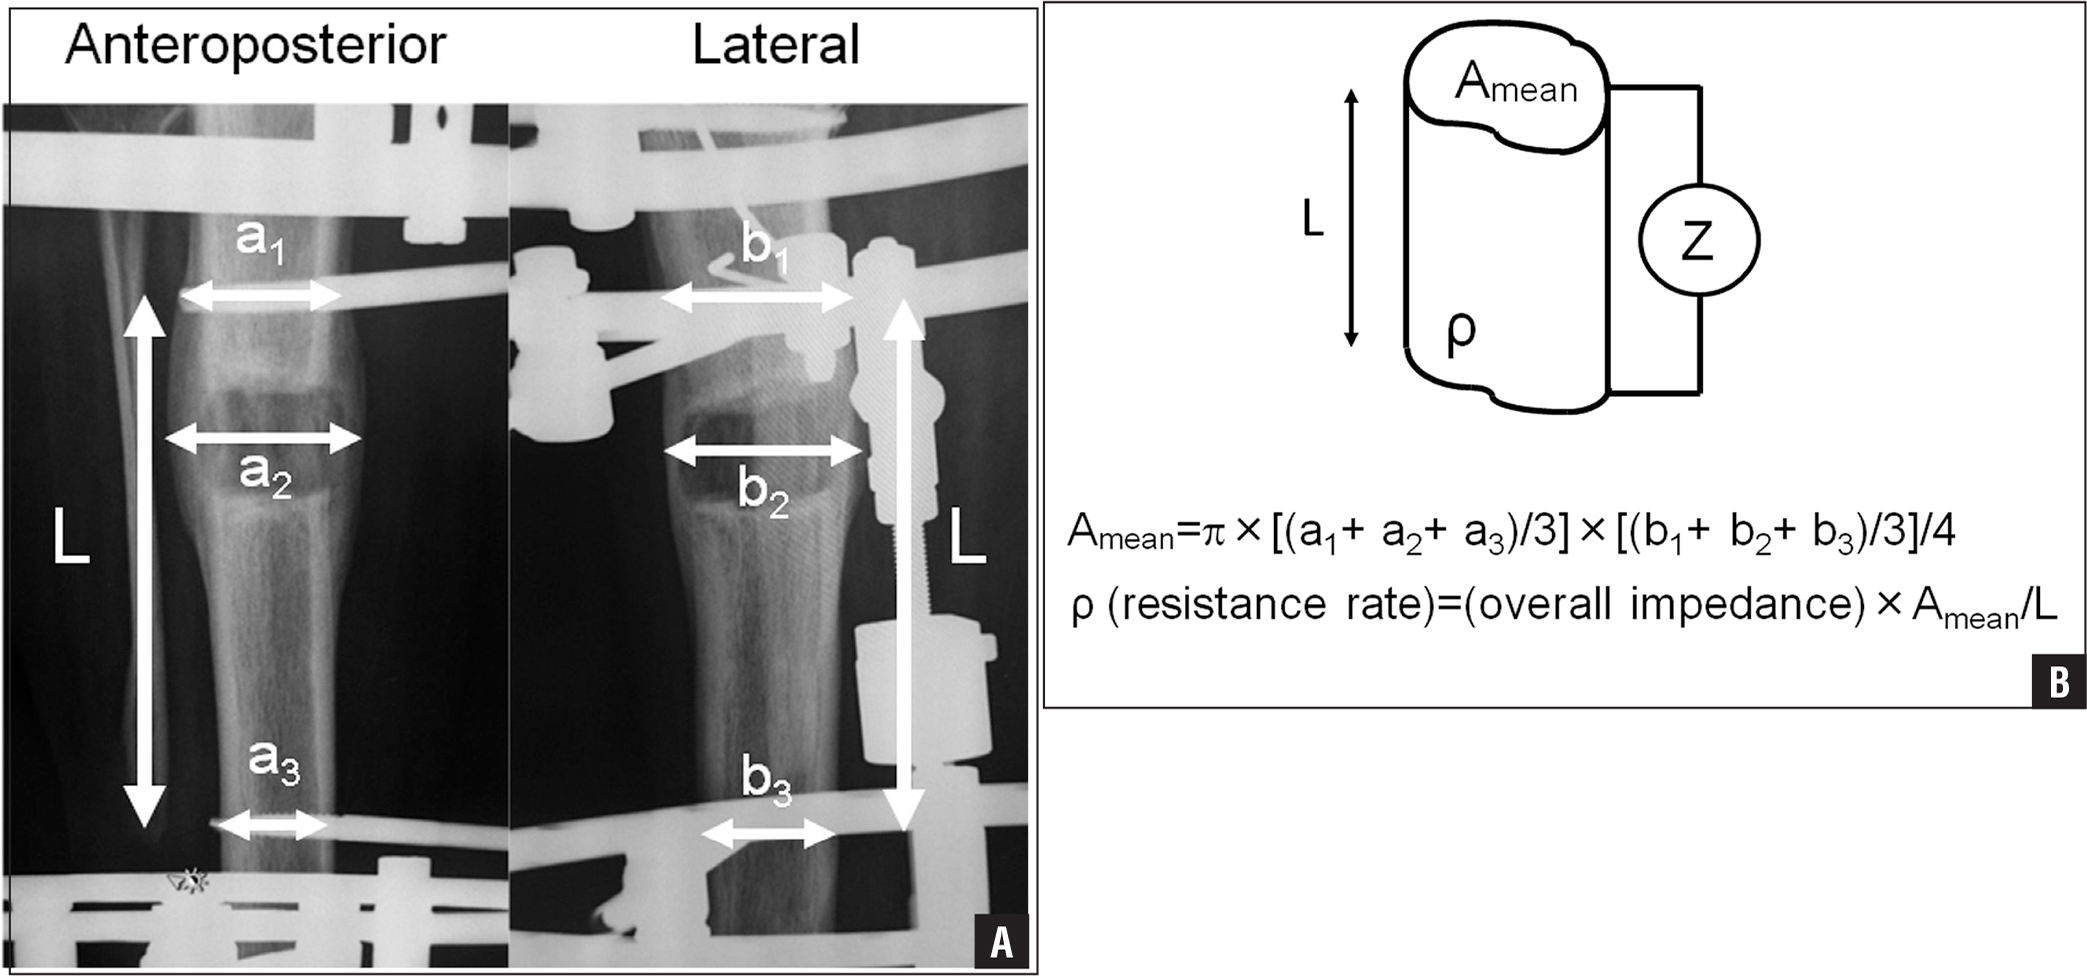 Photographs showing measurement of electrical resistance rates between the proximal and the distal pin regions. The resistance rate was calculated by measuring transverse diameter and anteroposterior diameter at the proximal pin region, maturation callus site, and distal pin region. Bone tissue was assumed to be in the shape of an oval column based on averaging of these values (A). Diagram illustrating measurement of mean cross-sectional area (Amean) and the resistance rate (ρ) (B).